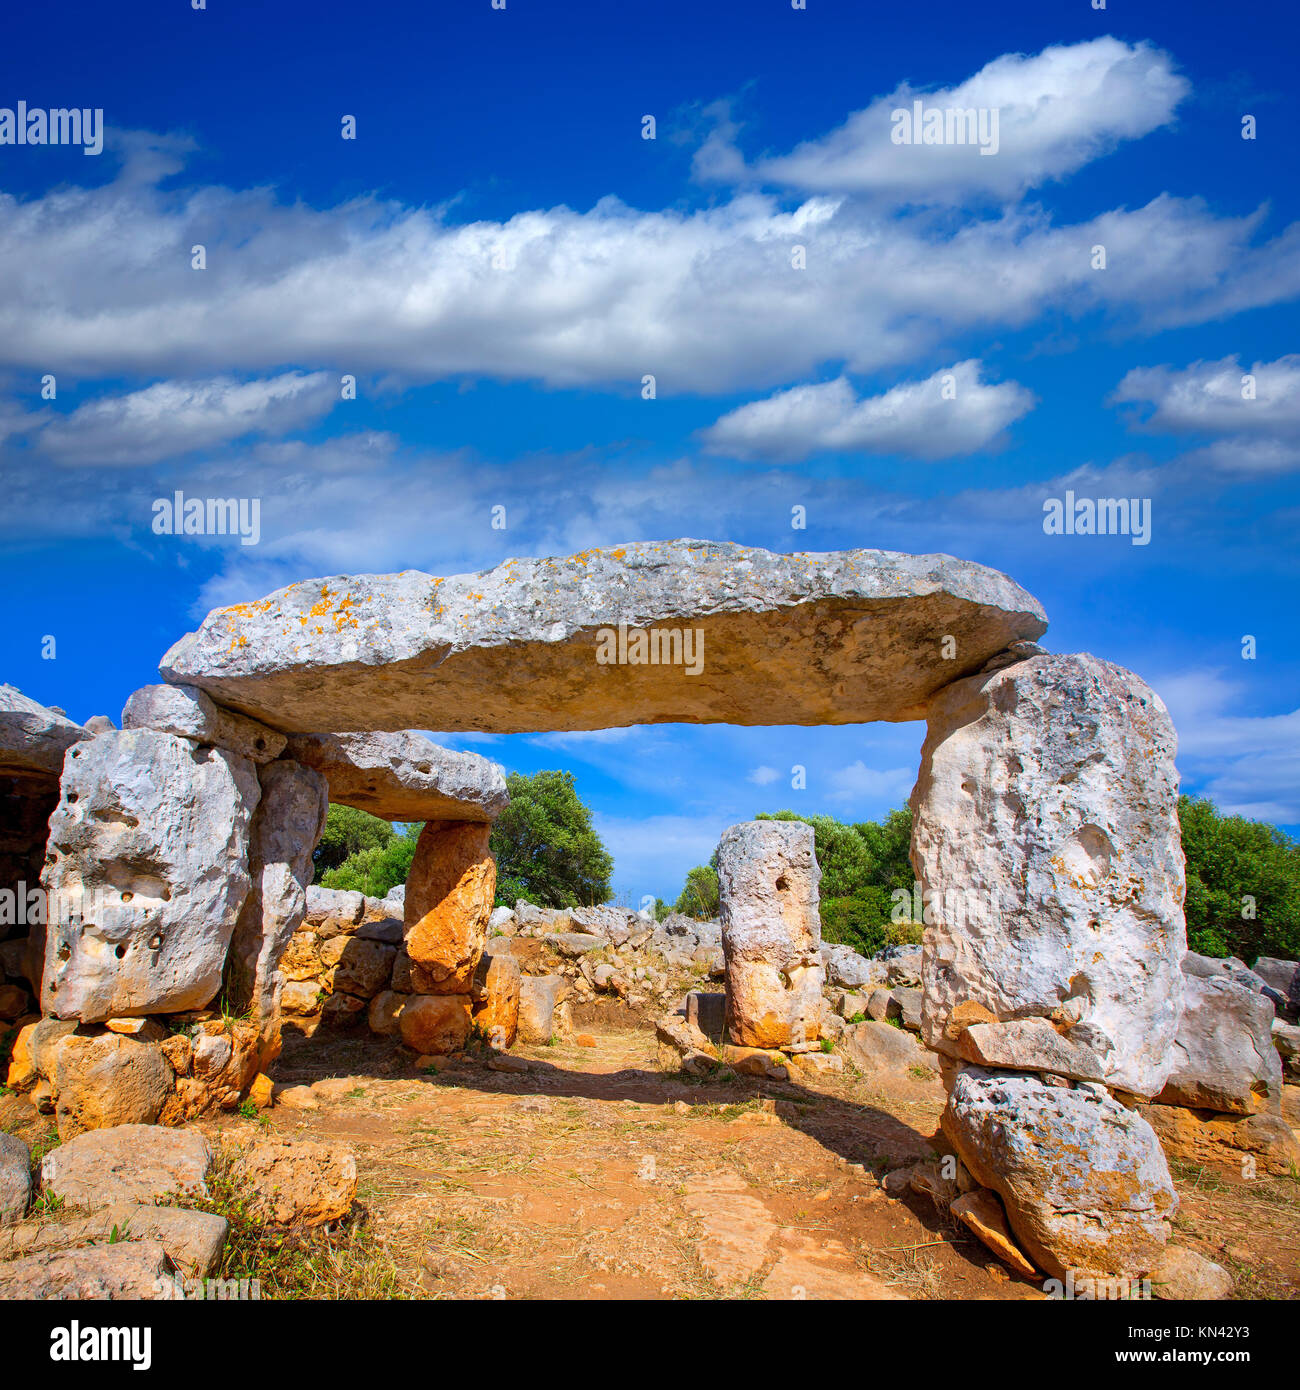 Taules of Menorca Torre de en Gaumes Galmes at Balearic islands of Spain. - Stock Image